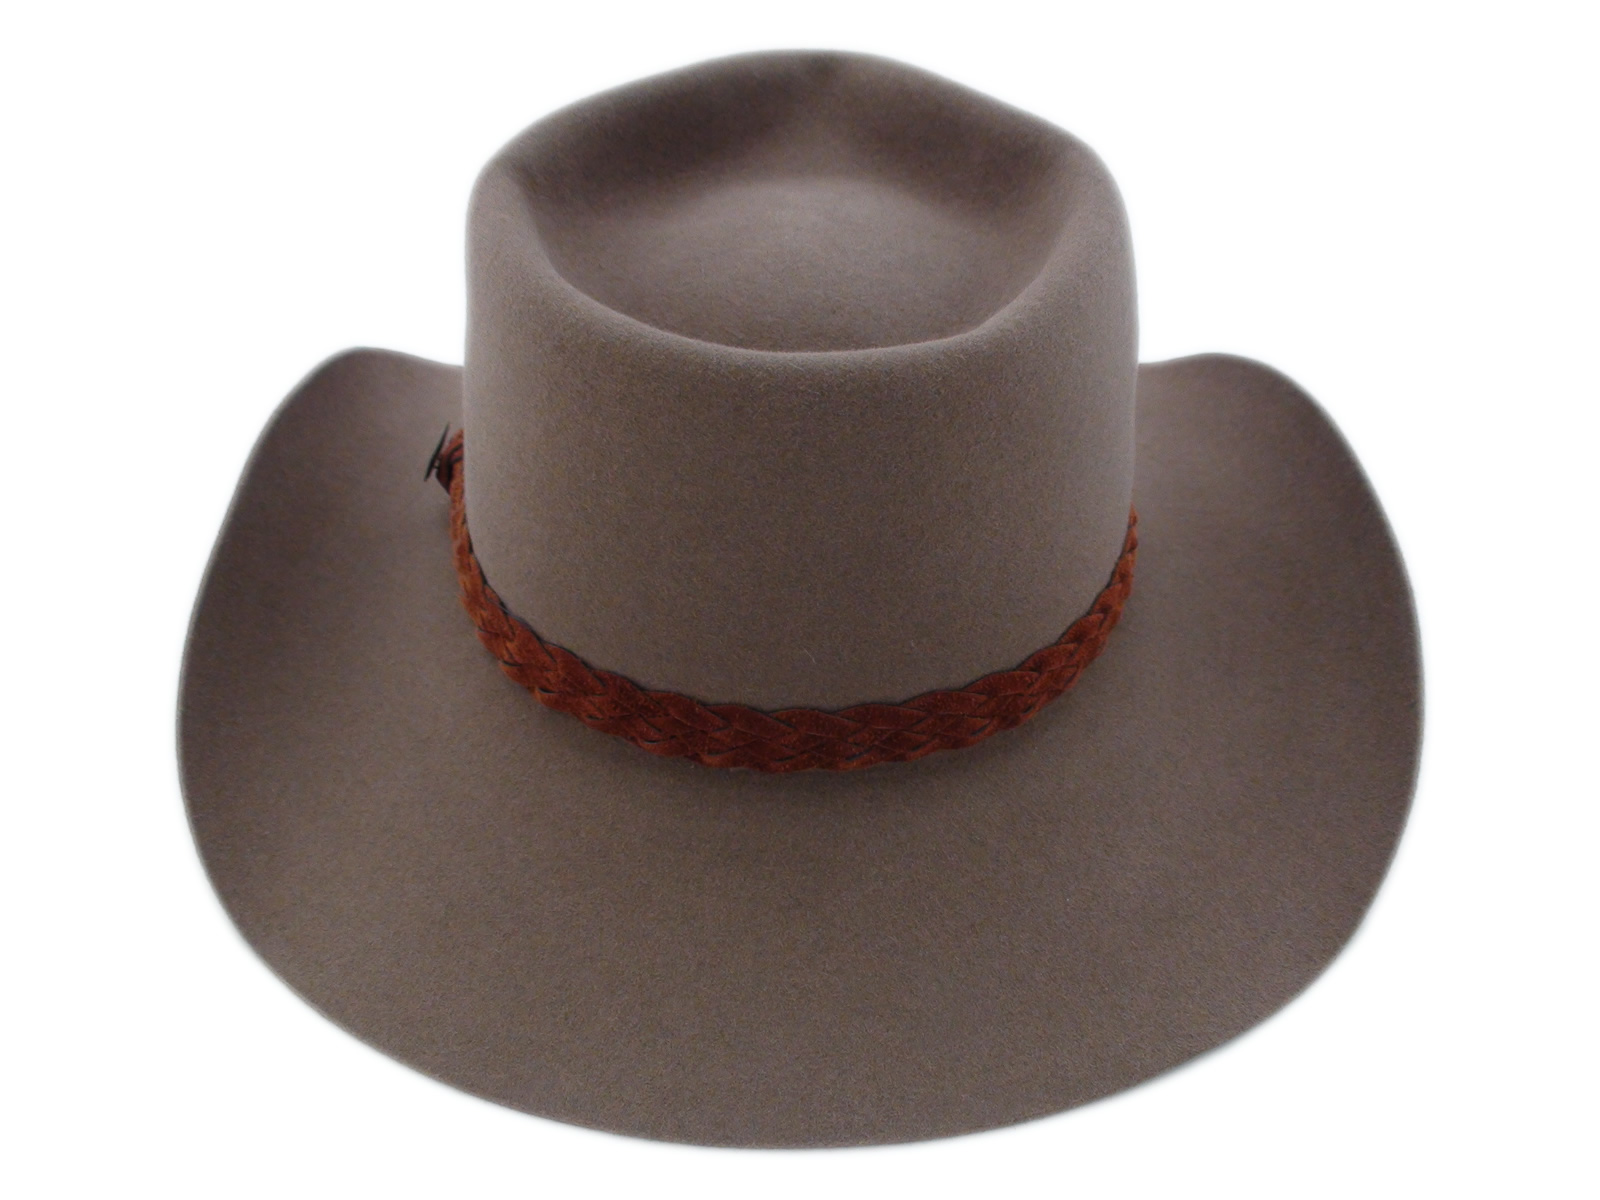 Akubra Hats Snowy River Fawn Brown Australian Cowboy Hat 0d925cd15eb